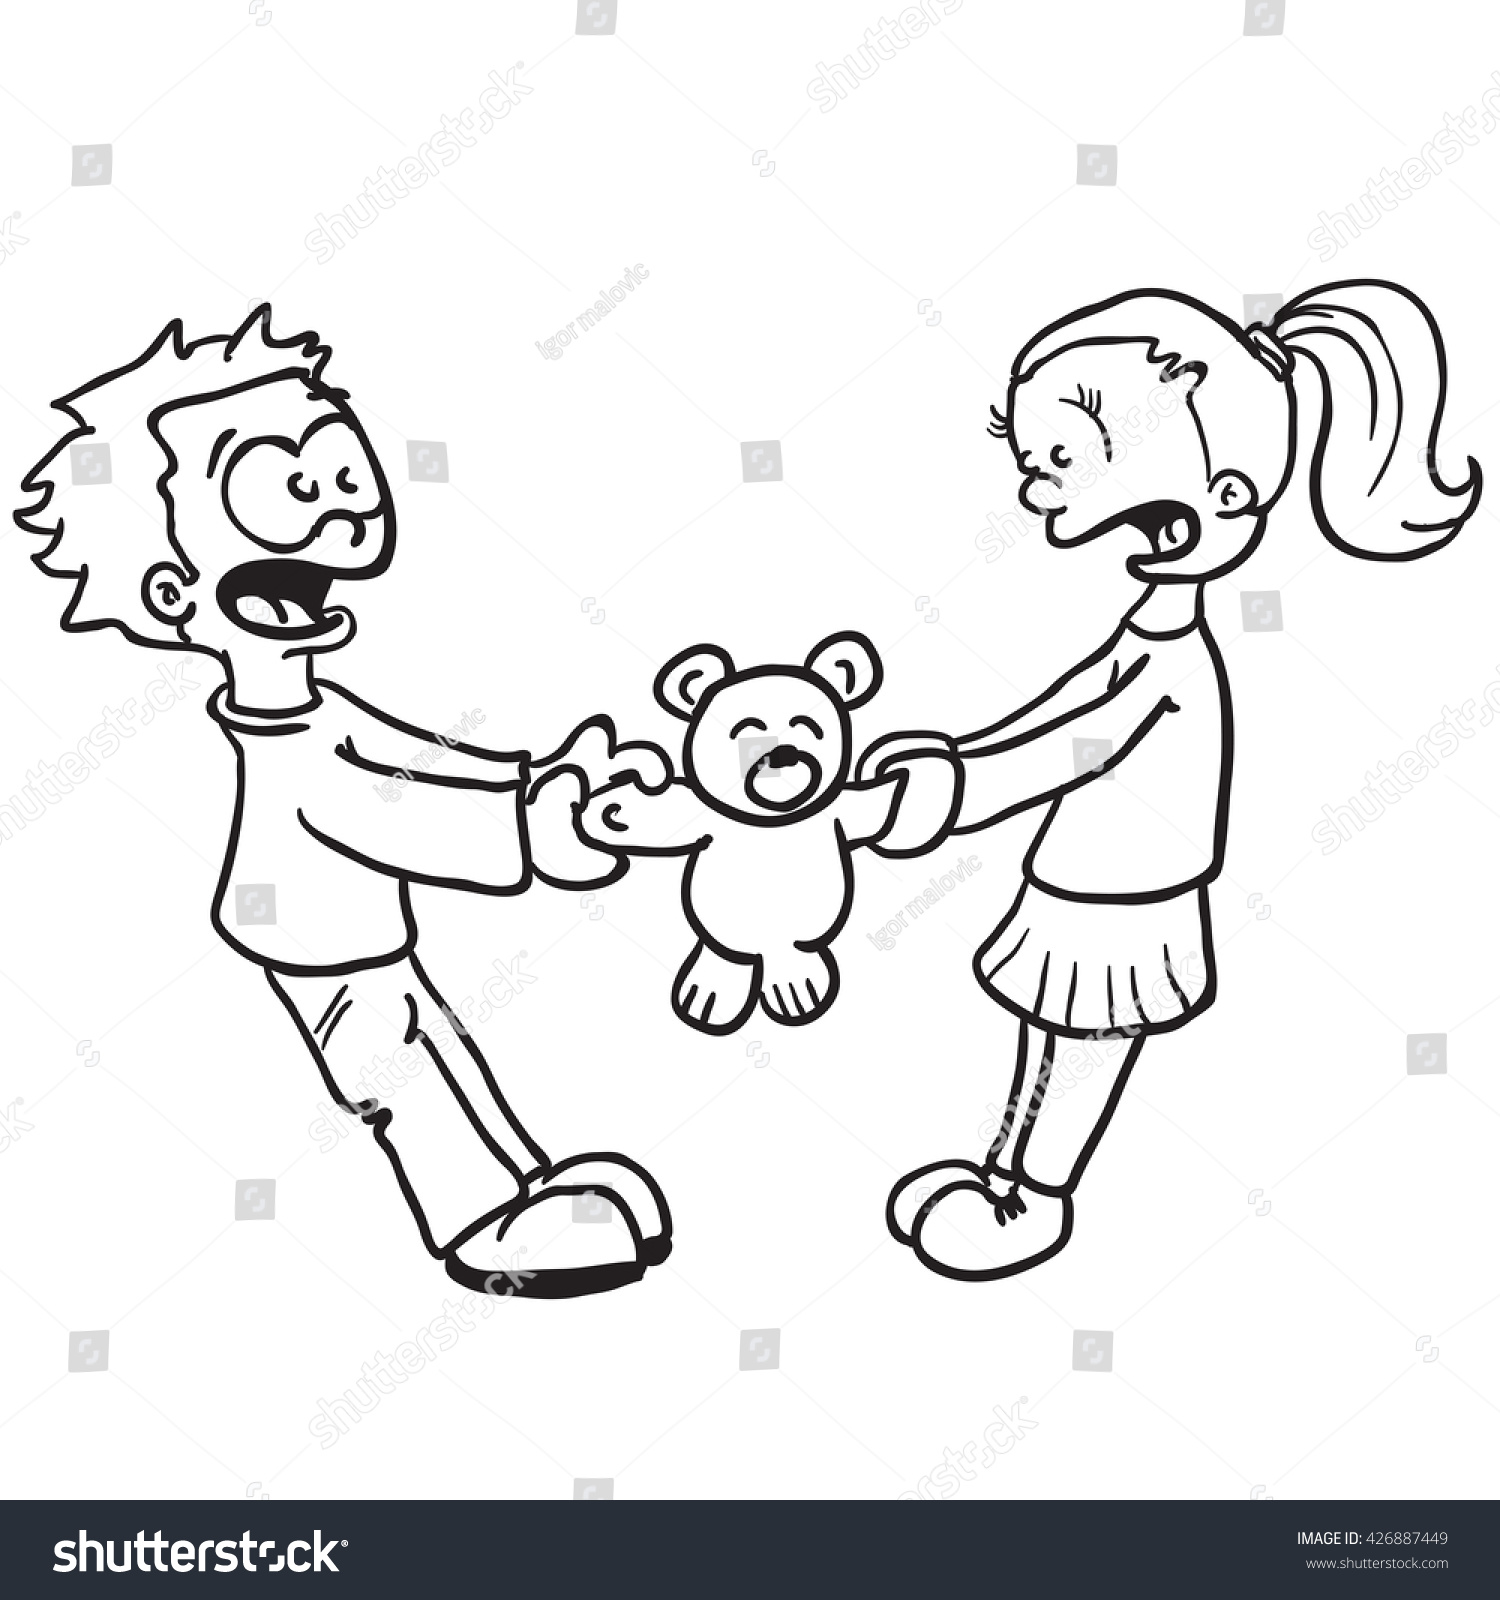 Children fighting clipart black and white 7 » Clipart Station.